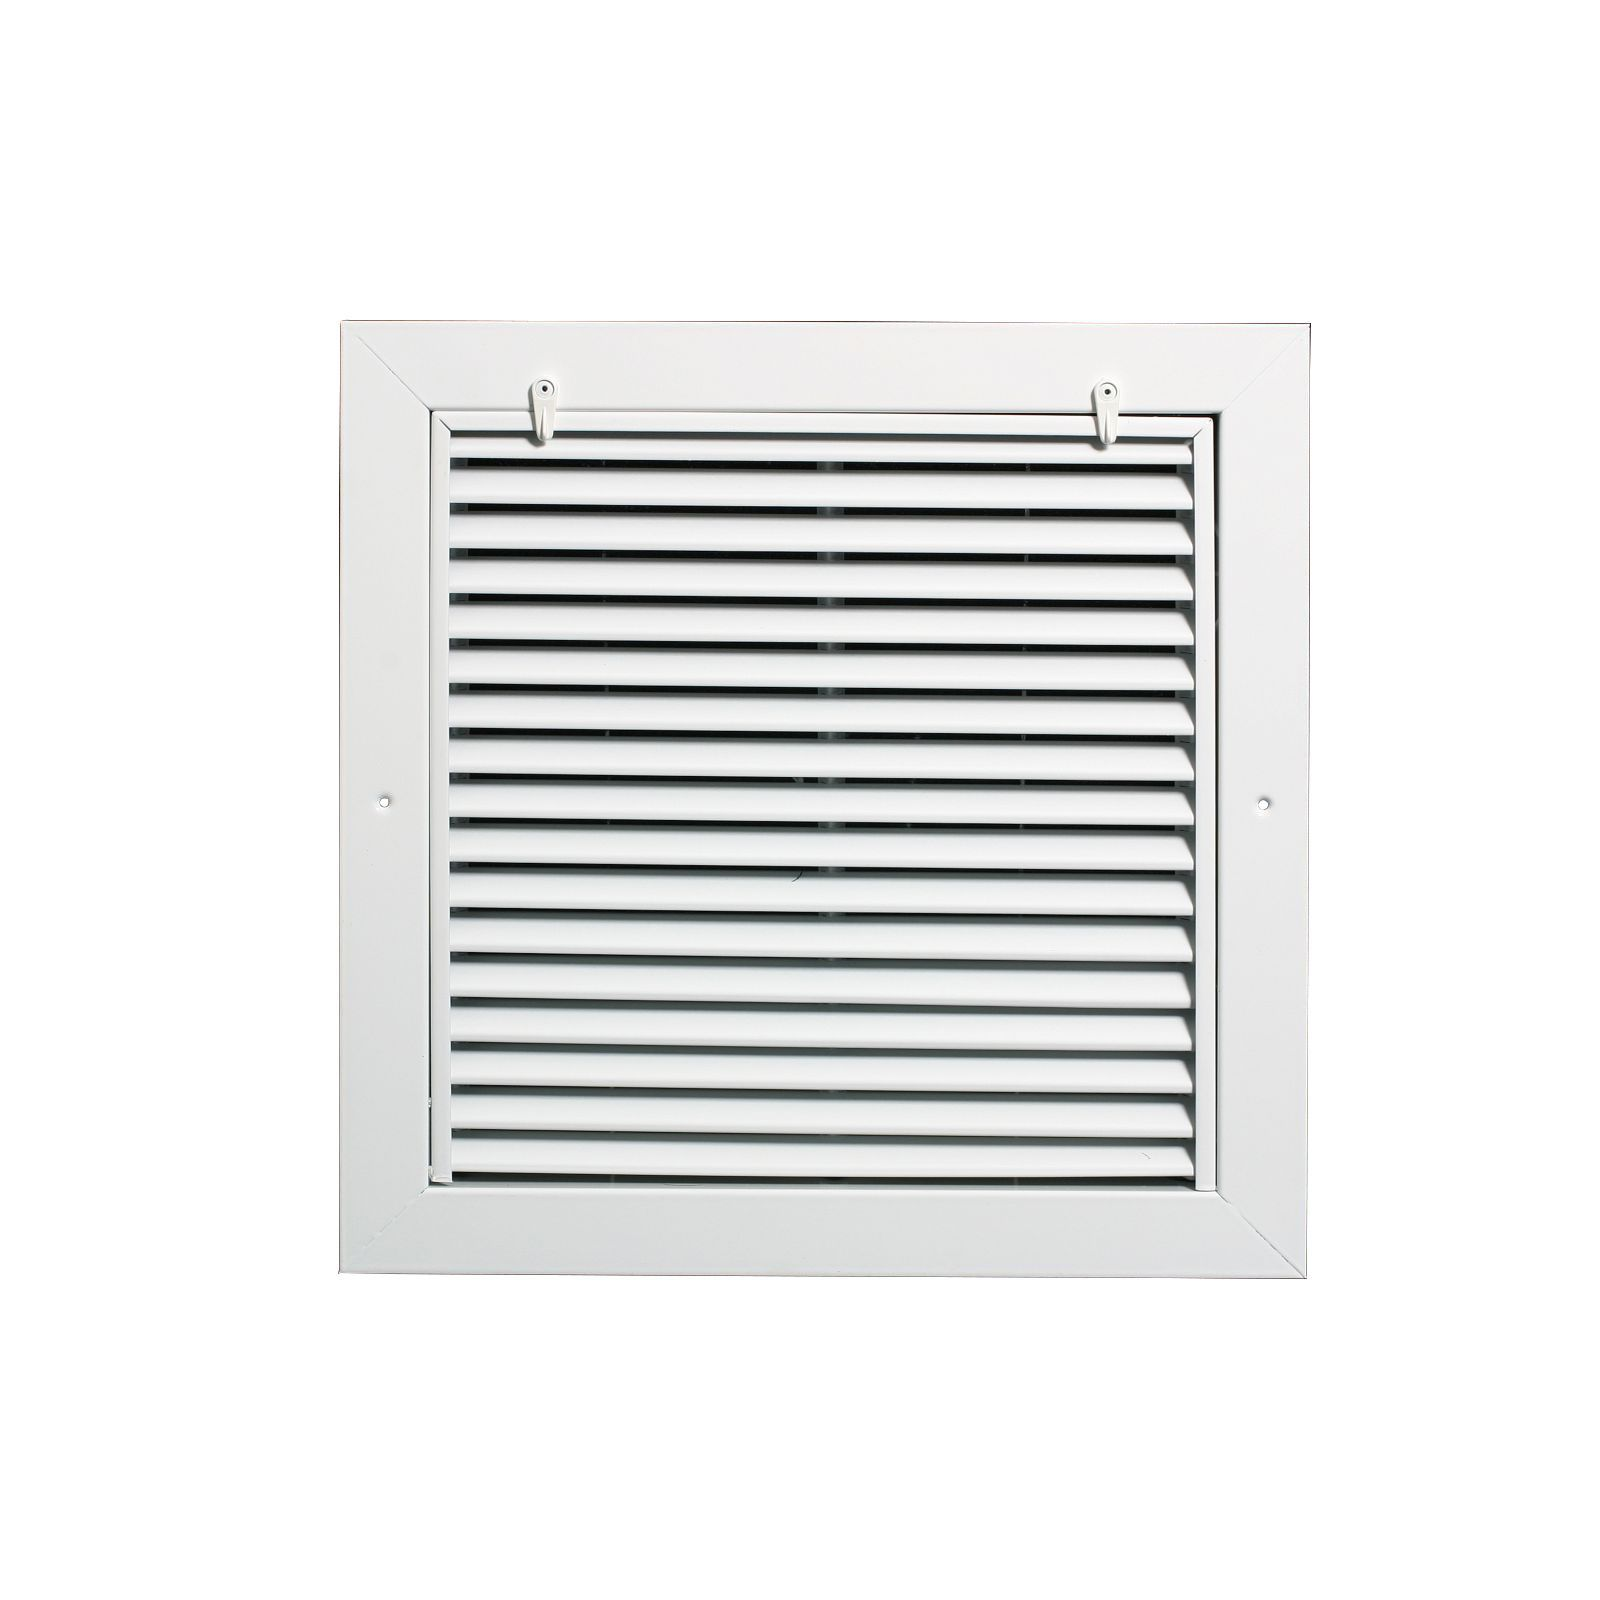 "Grille Tech RAFFS2018 - Aluminum Return Air Filter Grille, Filter Size 20"" X 18"" White"